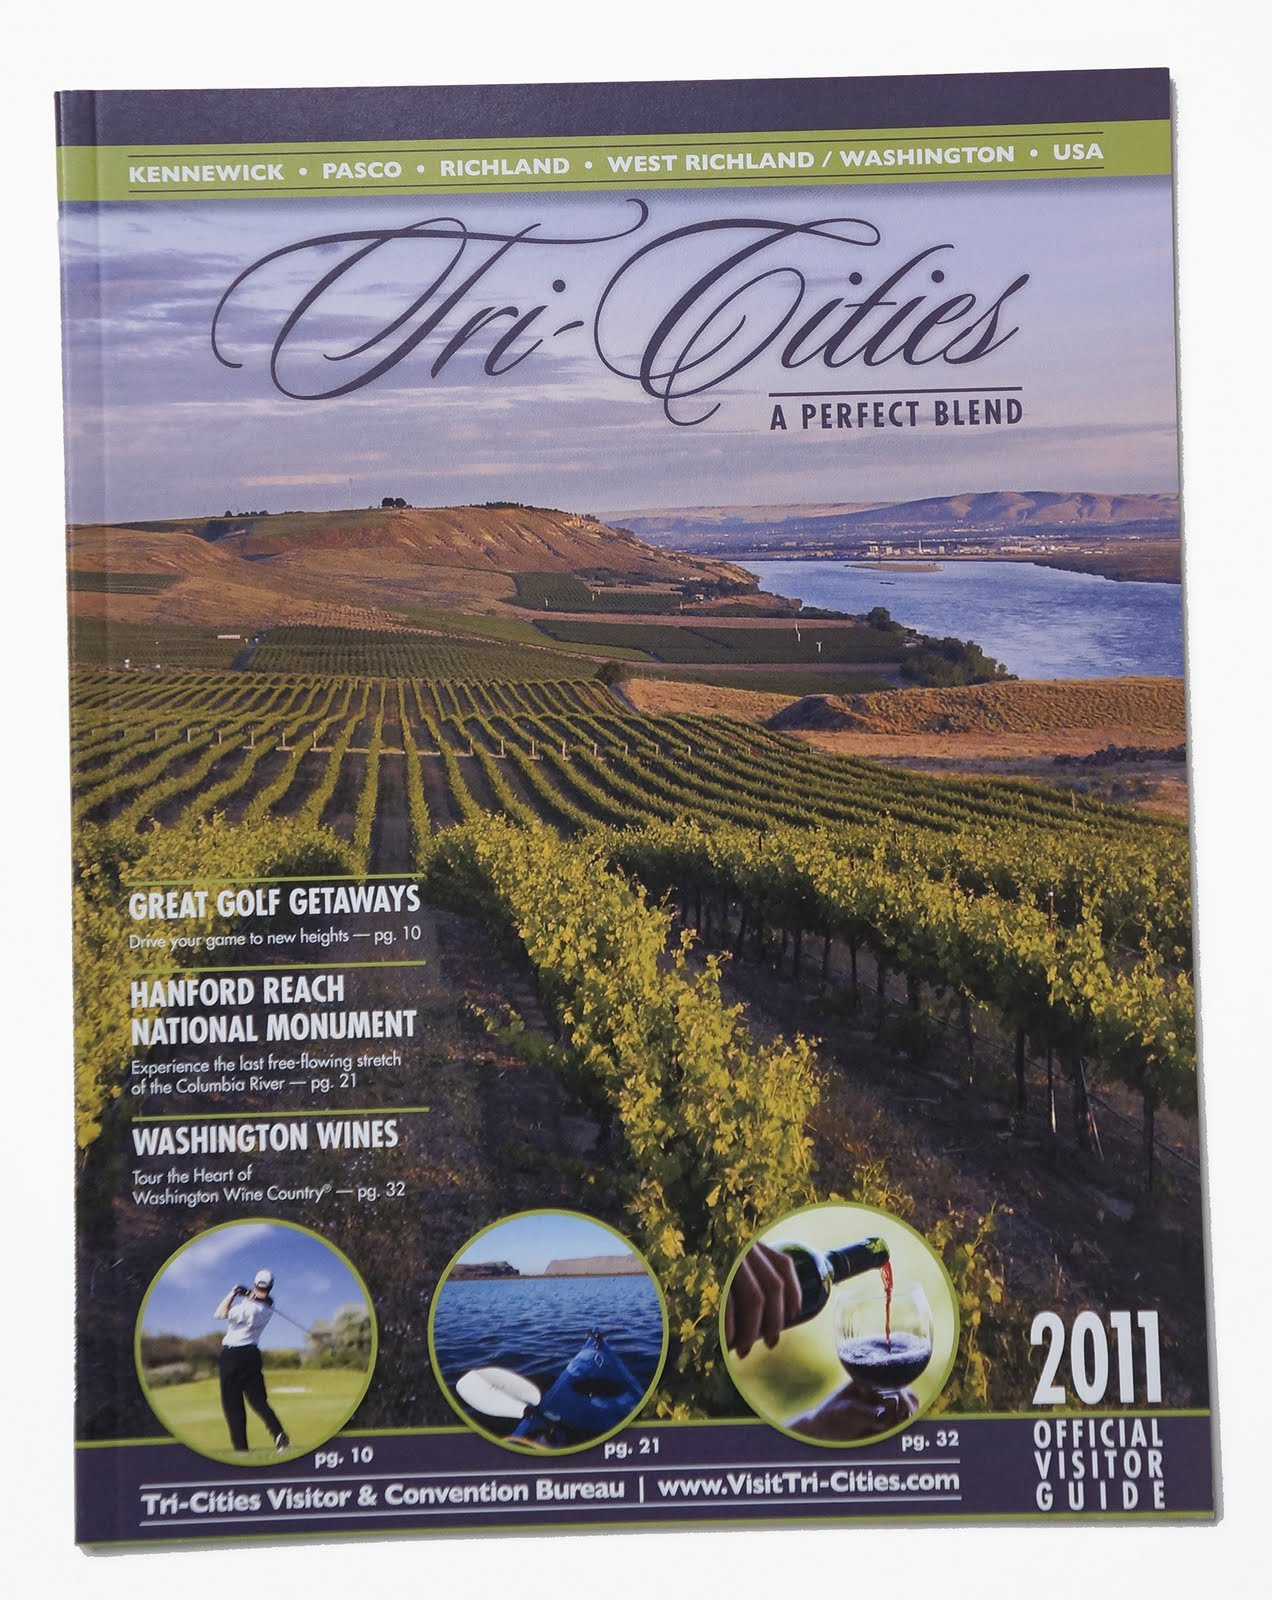 2011 Visitor Guide cover.